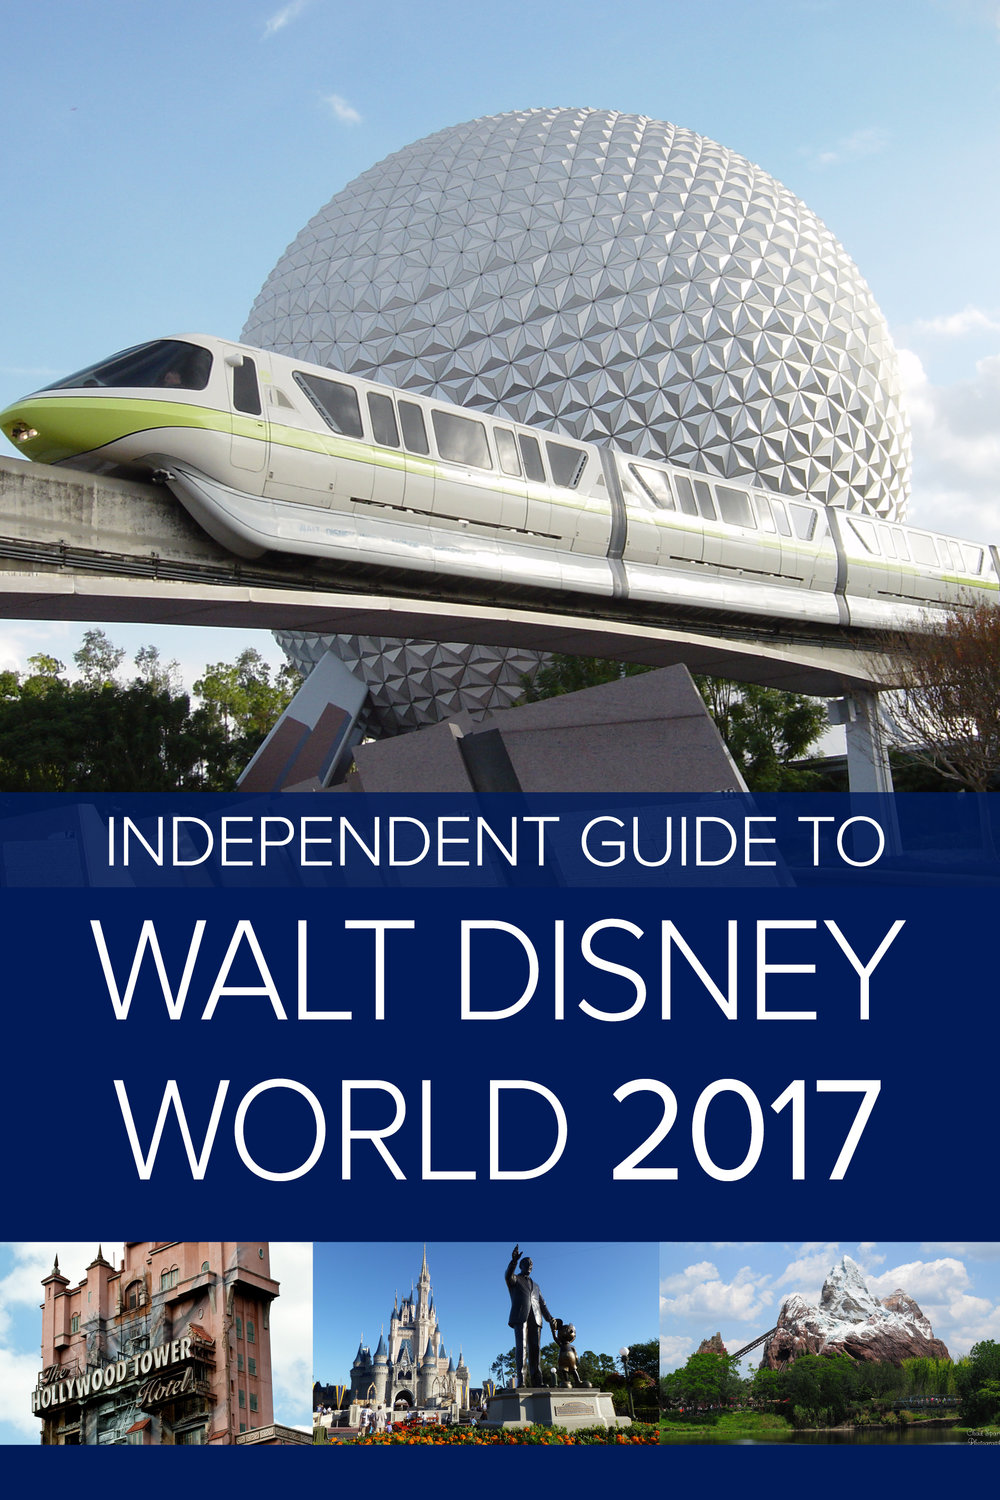 IndependentGuidetoWaltDisneyWorld2017.jpg